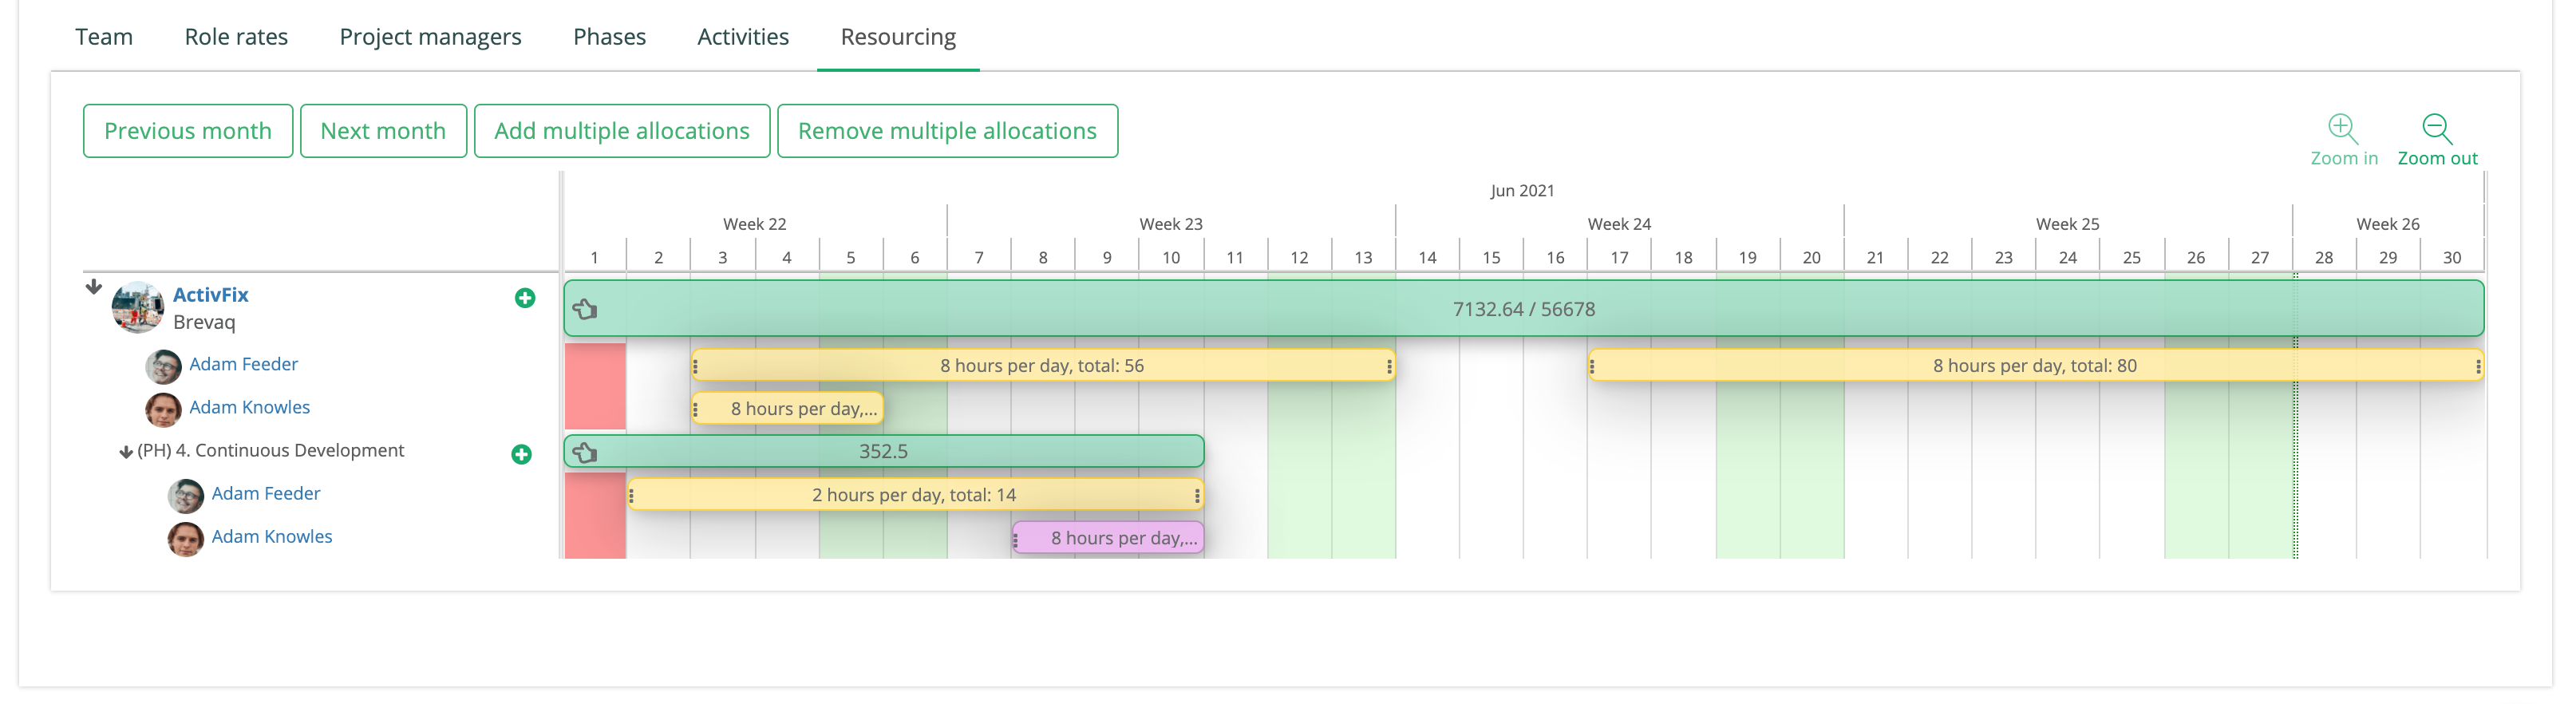 Resourcing planner in project view